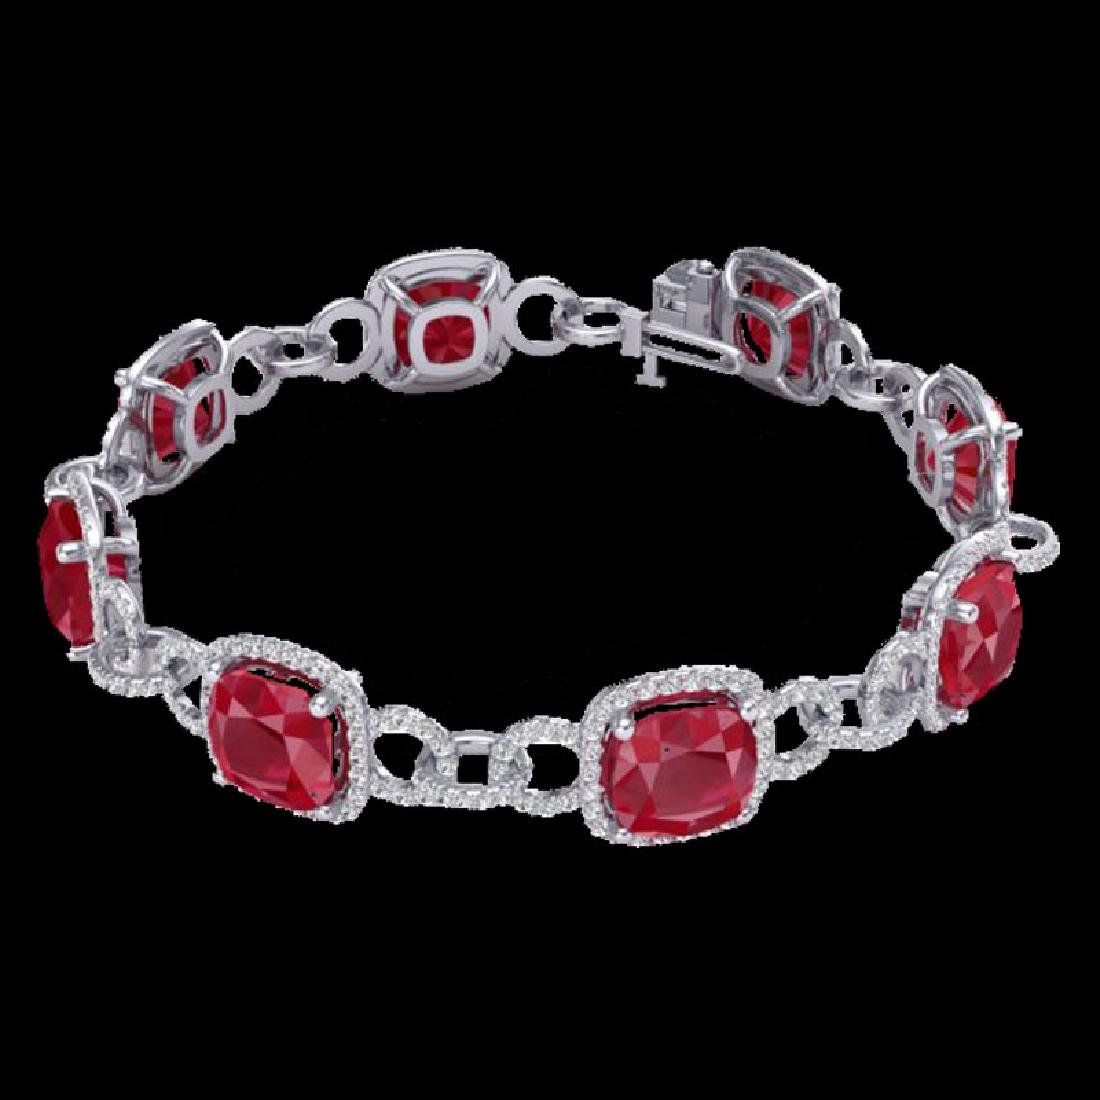 25 CTW Ruby & Micro VS/SI Diamond Bracelet 14K White - 2